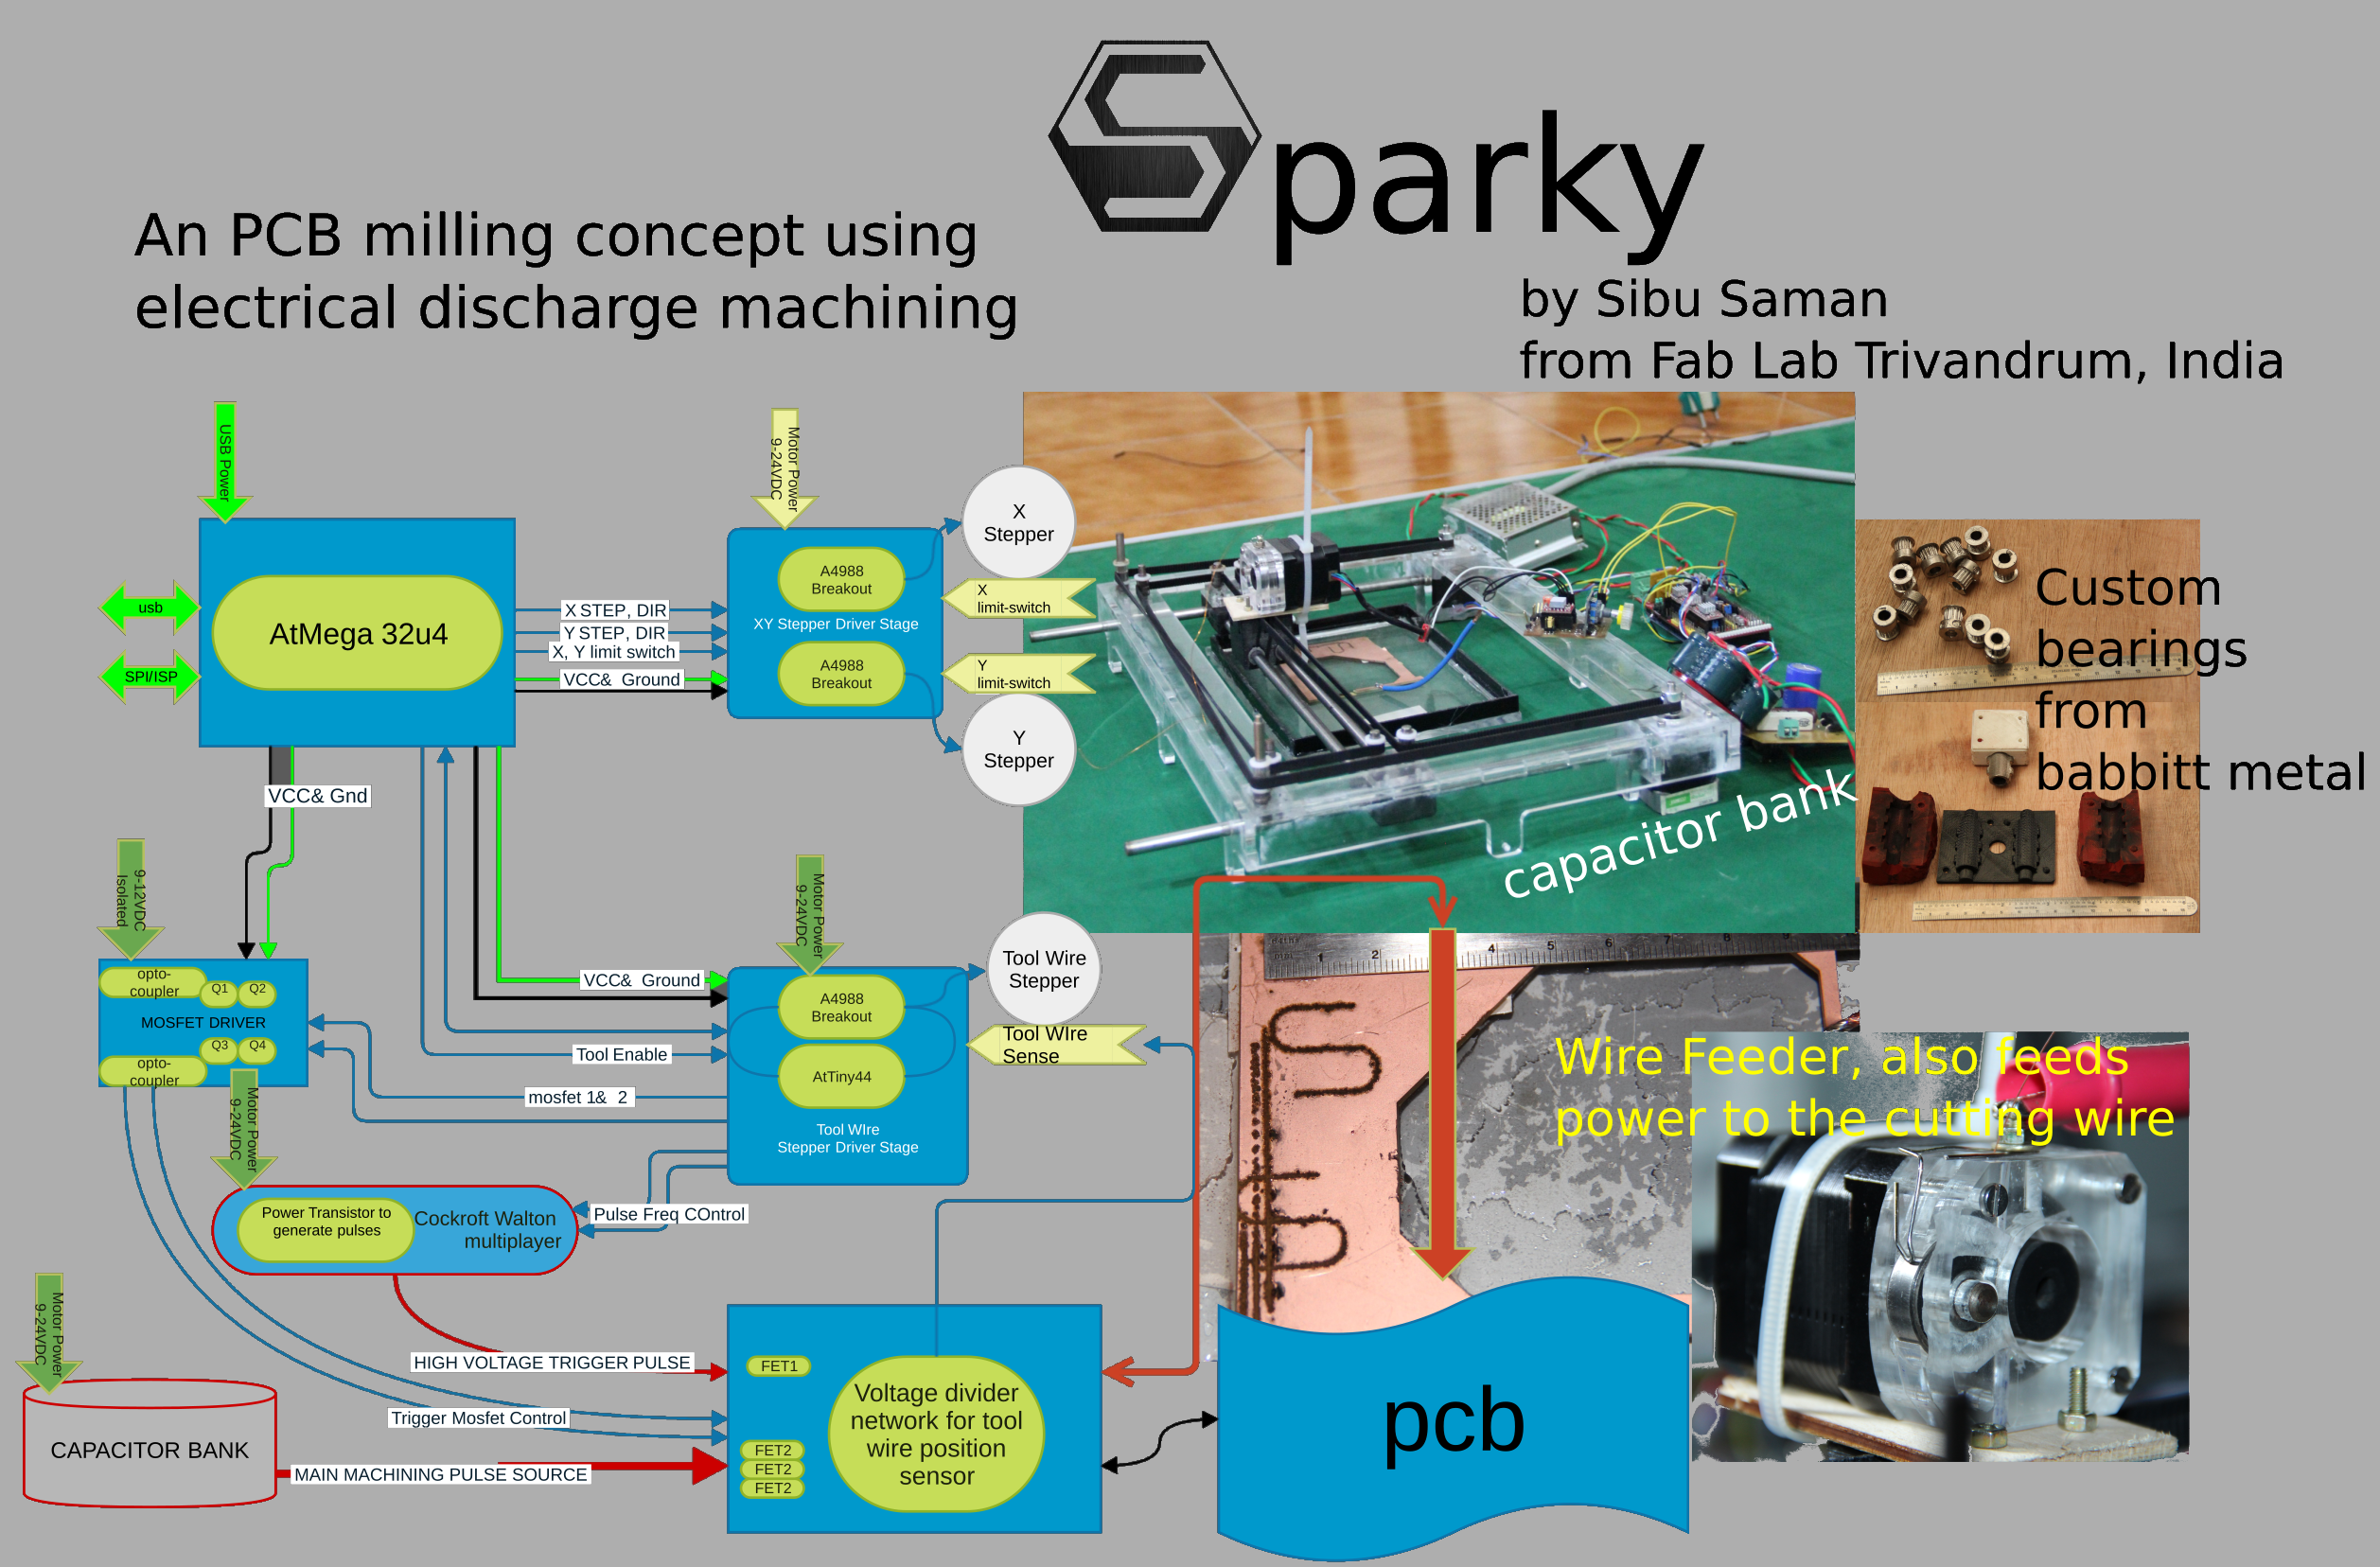 Sparky: the EDM PCB Mill